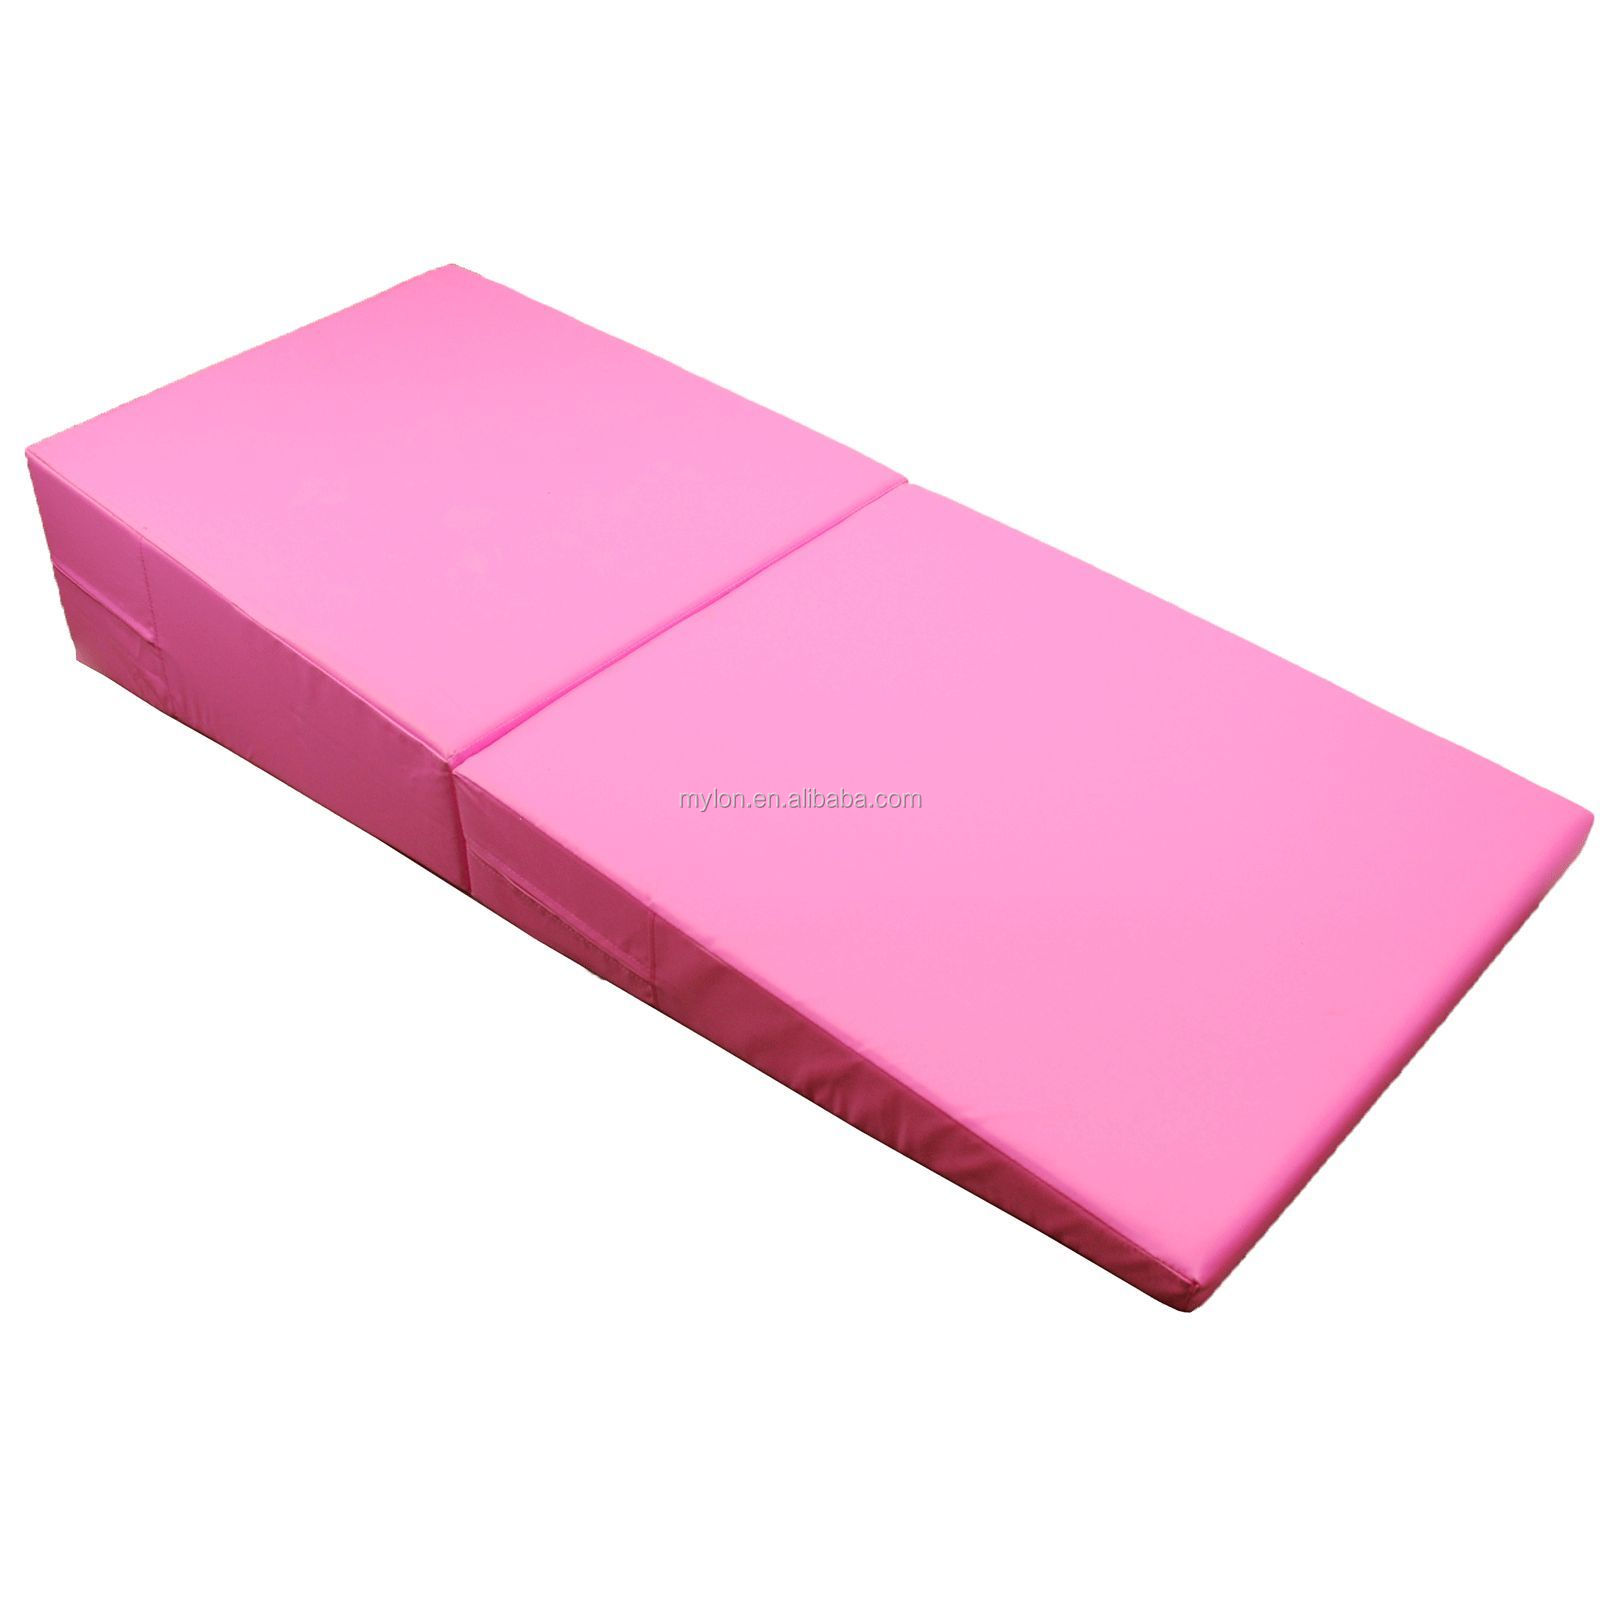 buy quality pin suppliers for directly mat mats sale china inflatable air from gymnastics with track cheap